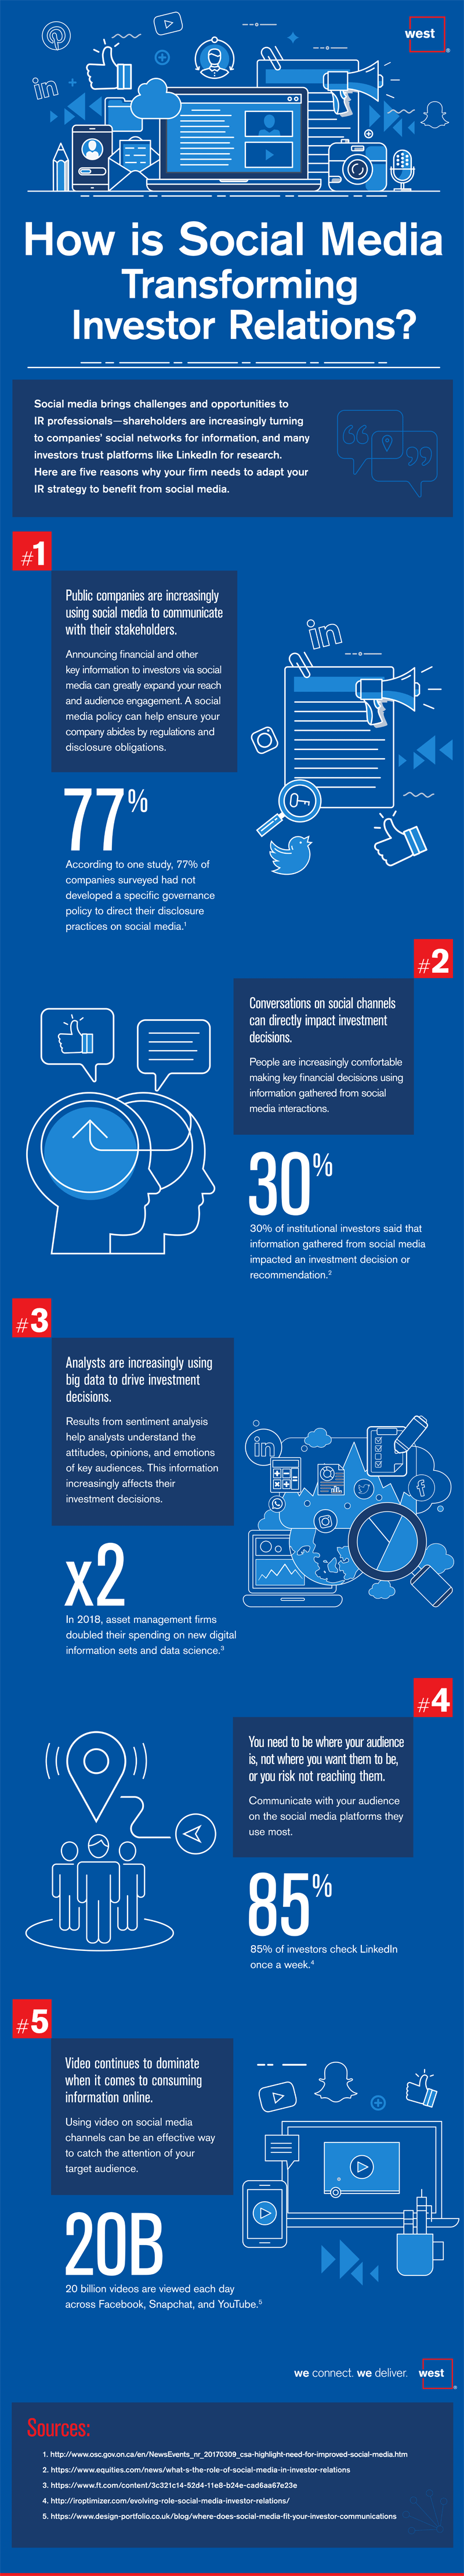 how social media is transforming investor relations infographic